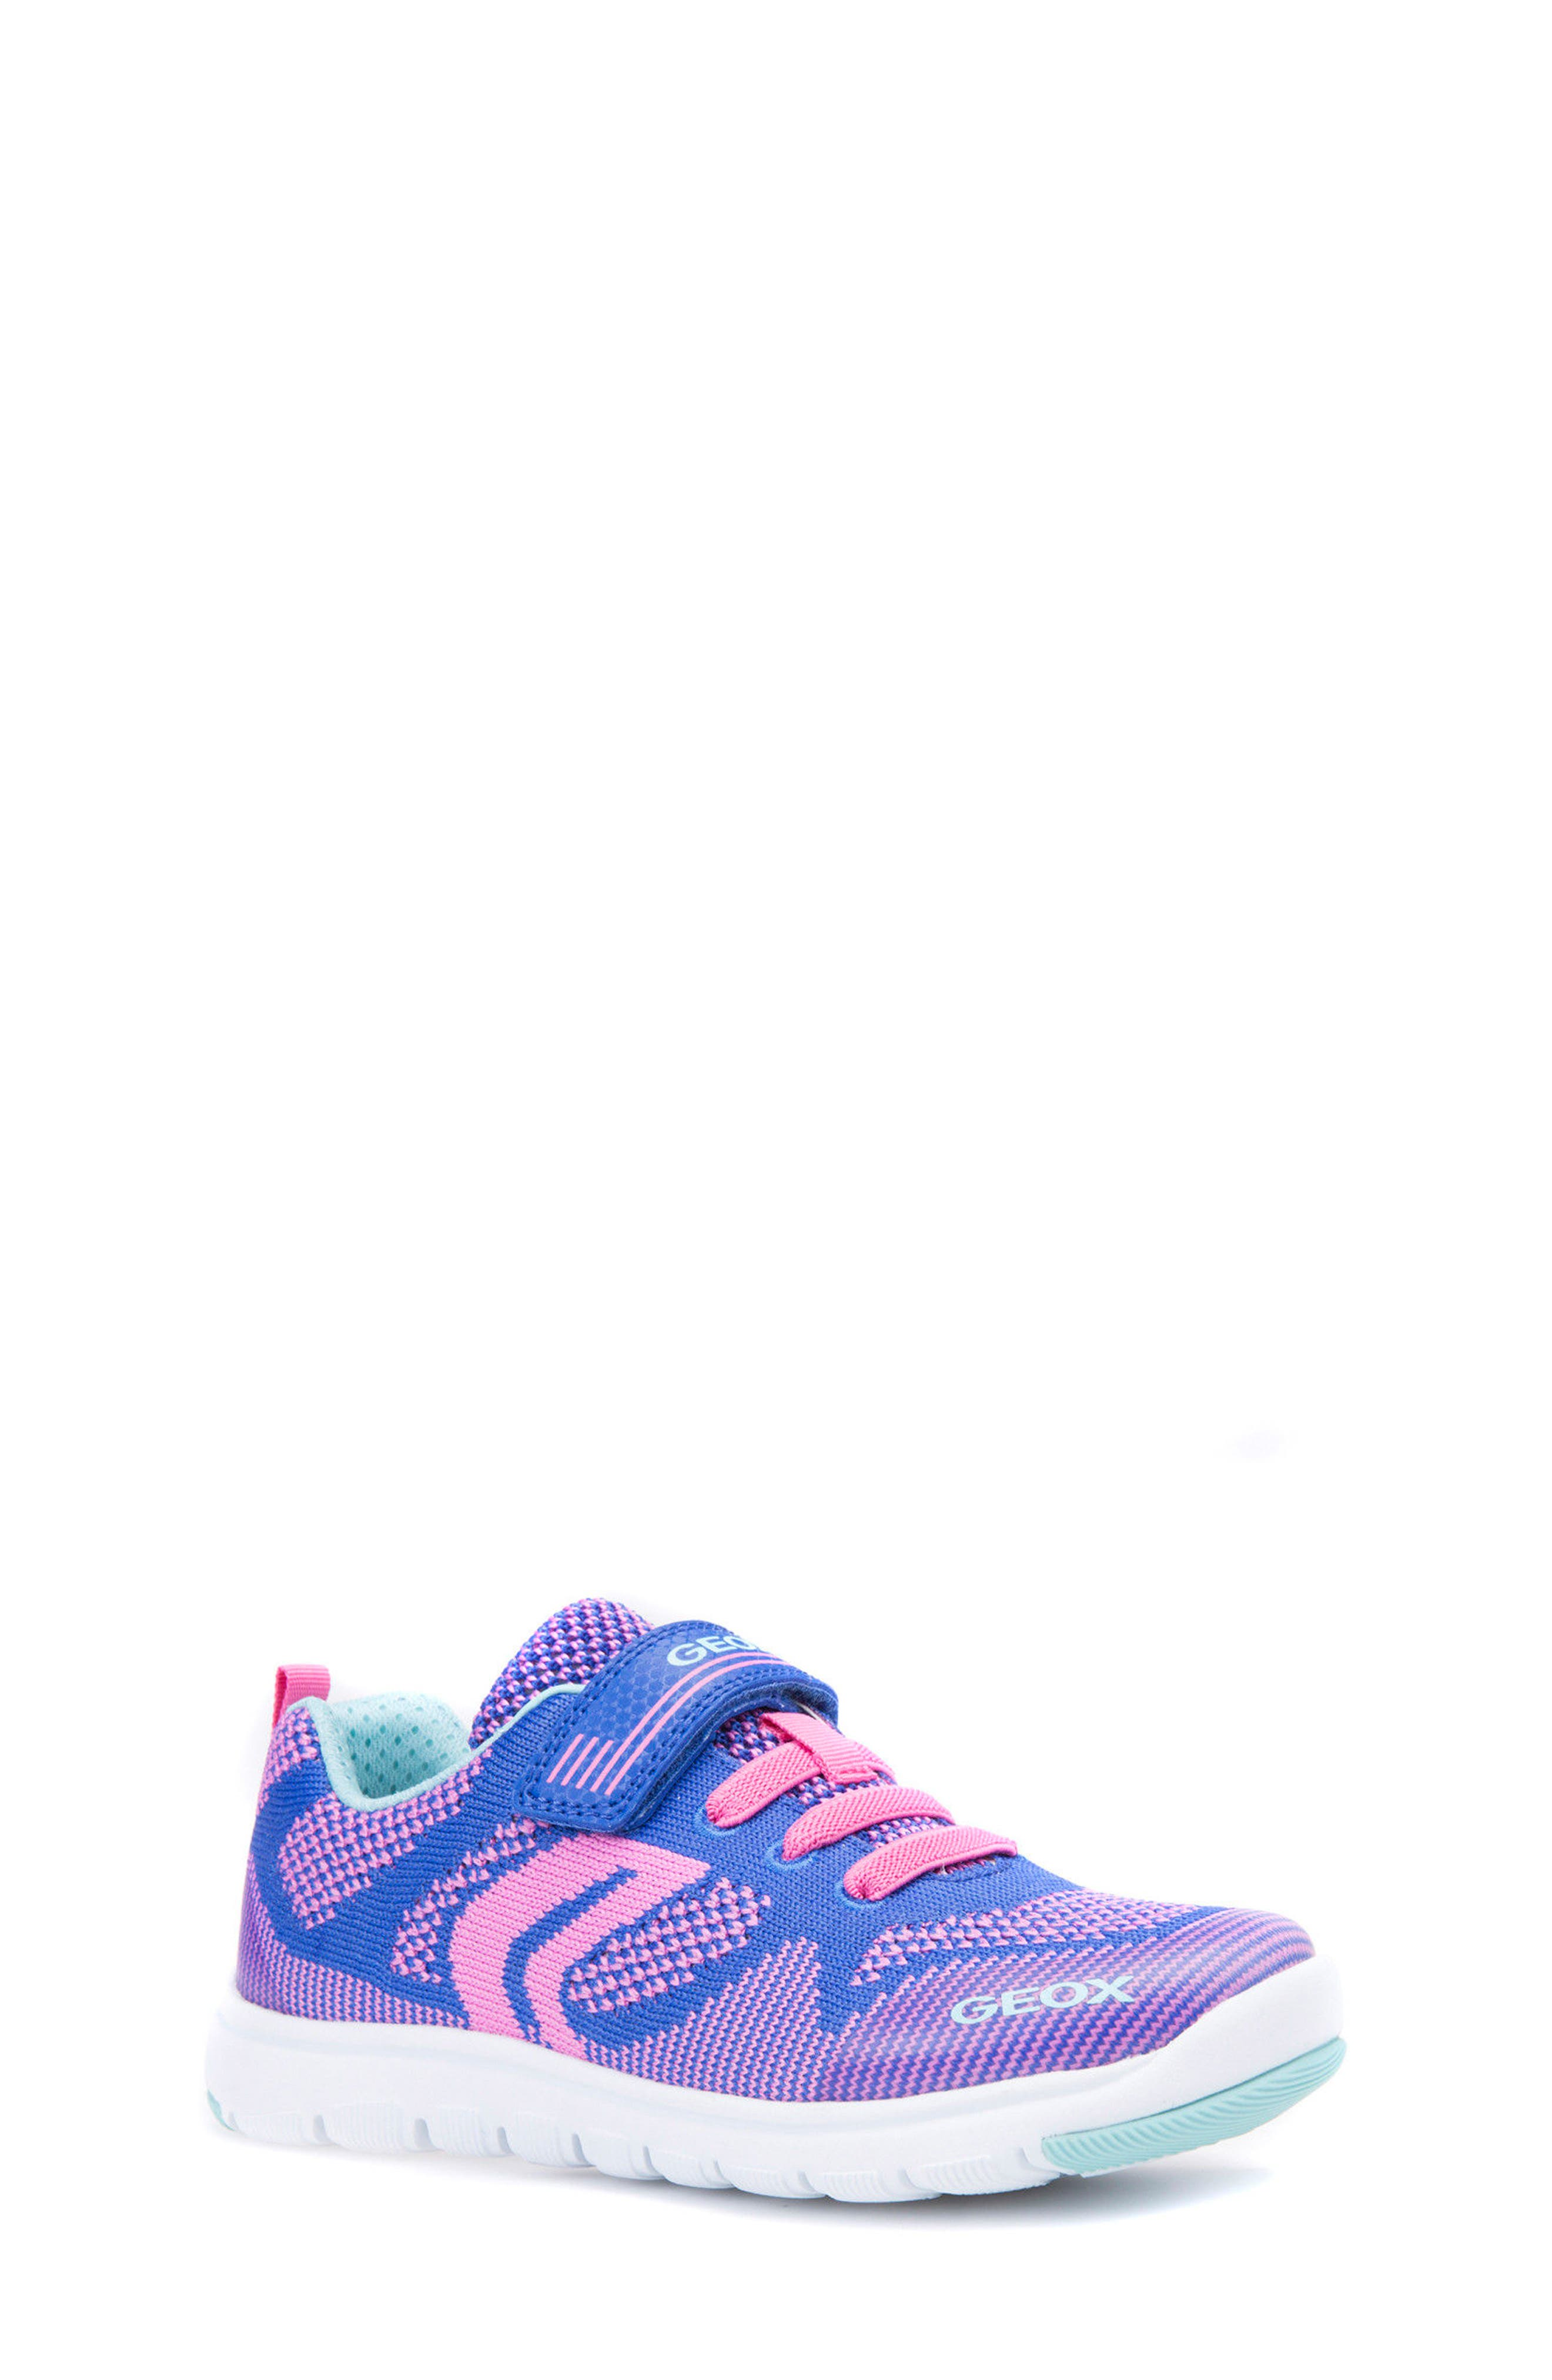 Xunday Low Top Woven Sneaker,                             Main thumbnail 1, color,                             Bluette/ Fuchsia